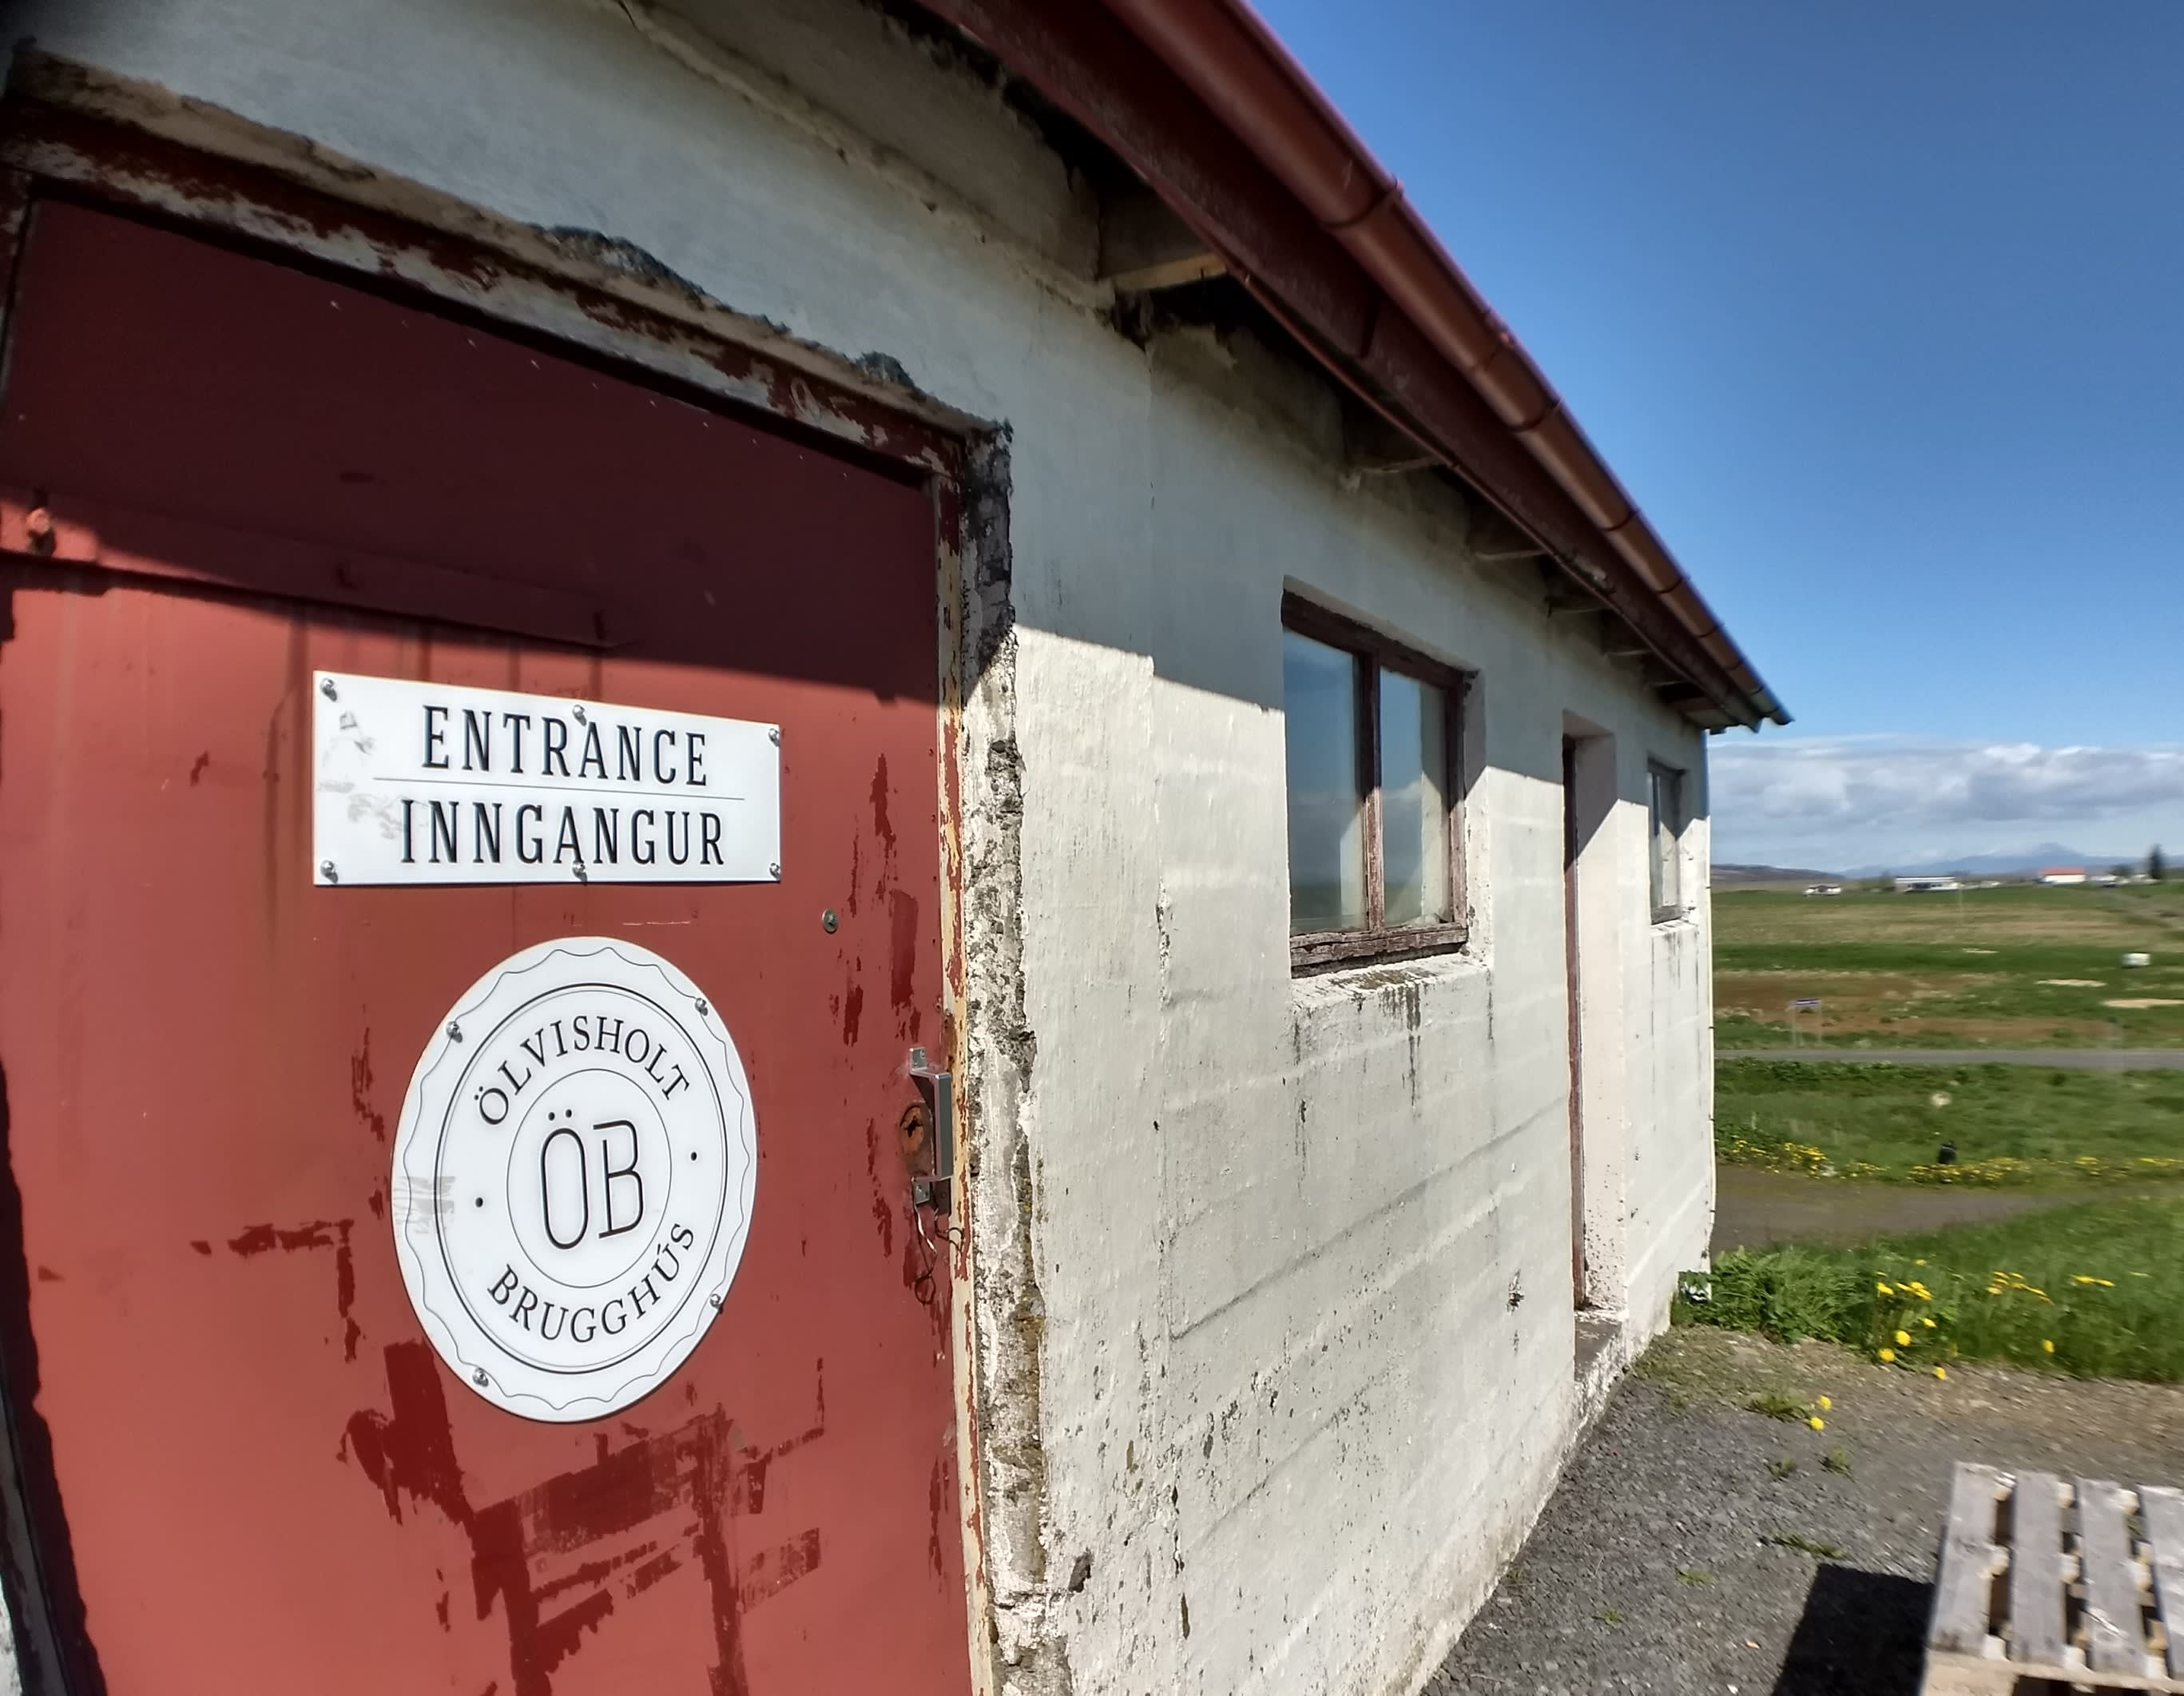 The entrance to Olvisholt dairy farm, located near Selfoss in Iceland